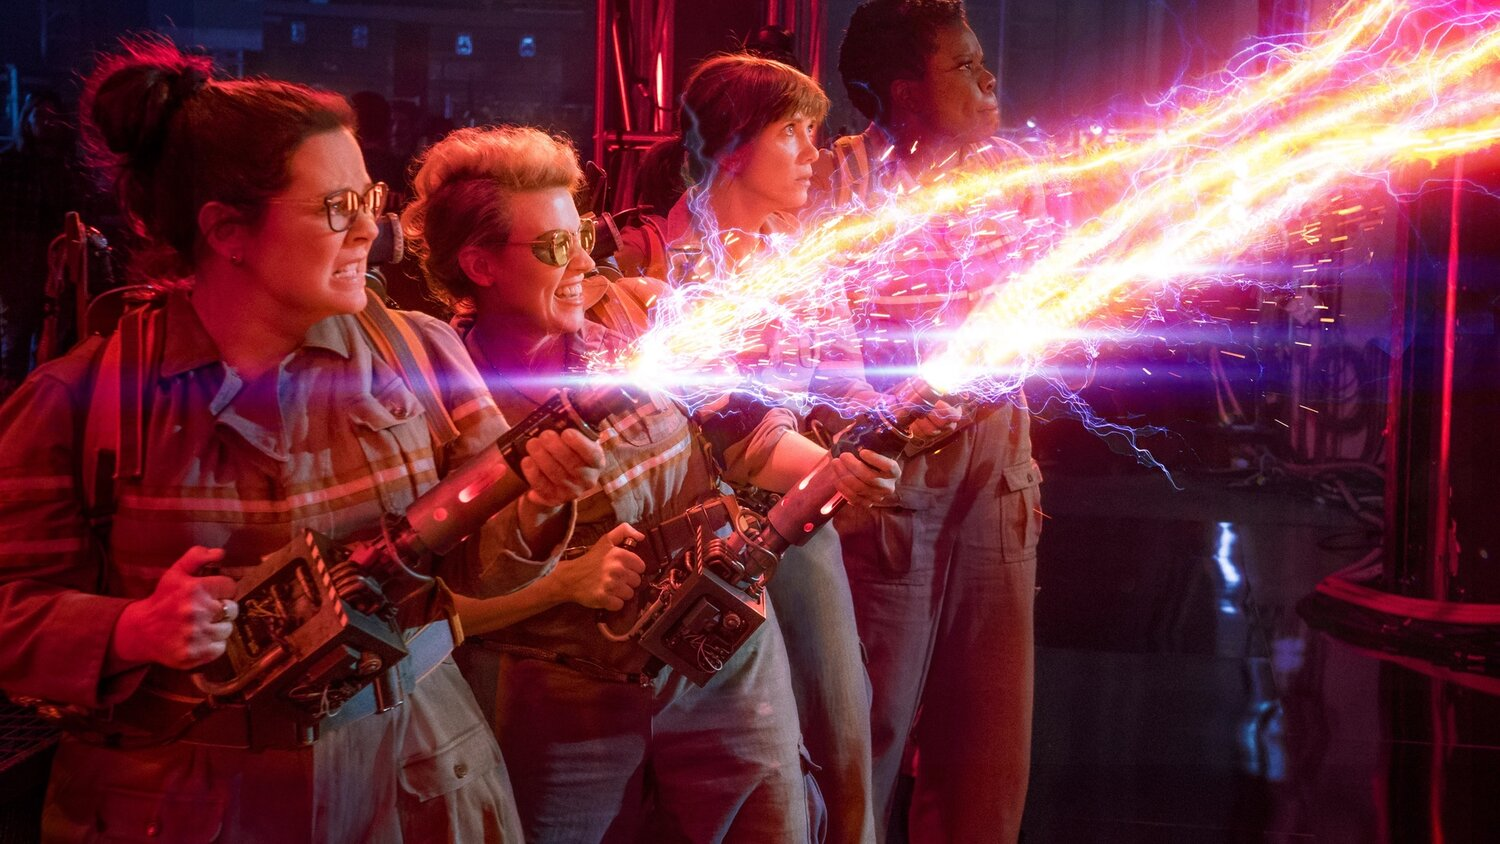 Paul Feig Has a Three and a Half Hour Director's Cut of His GHOSTBUSTERS Reboot He Wants to Share — GeekTyrant